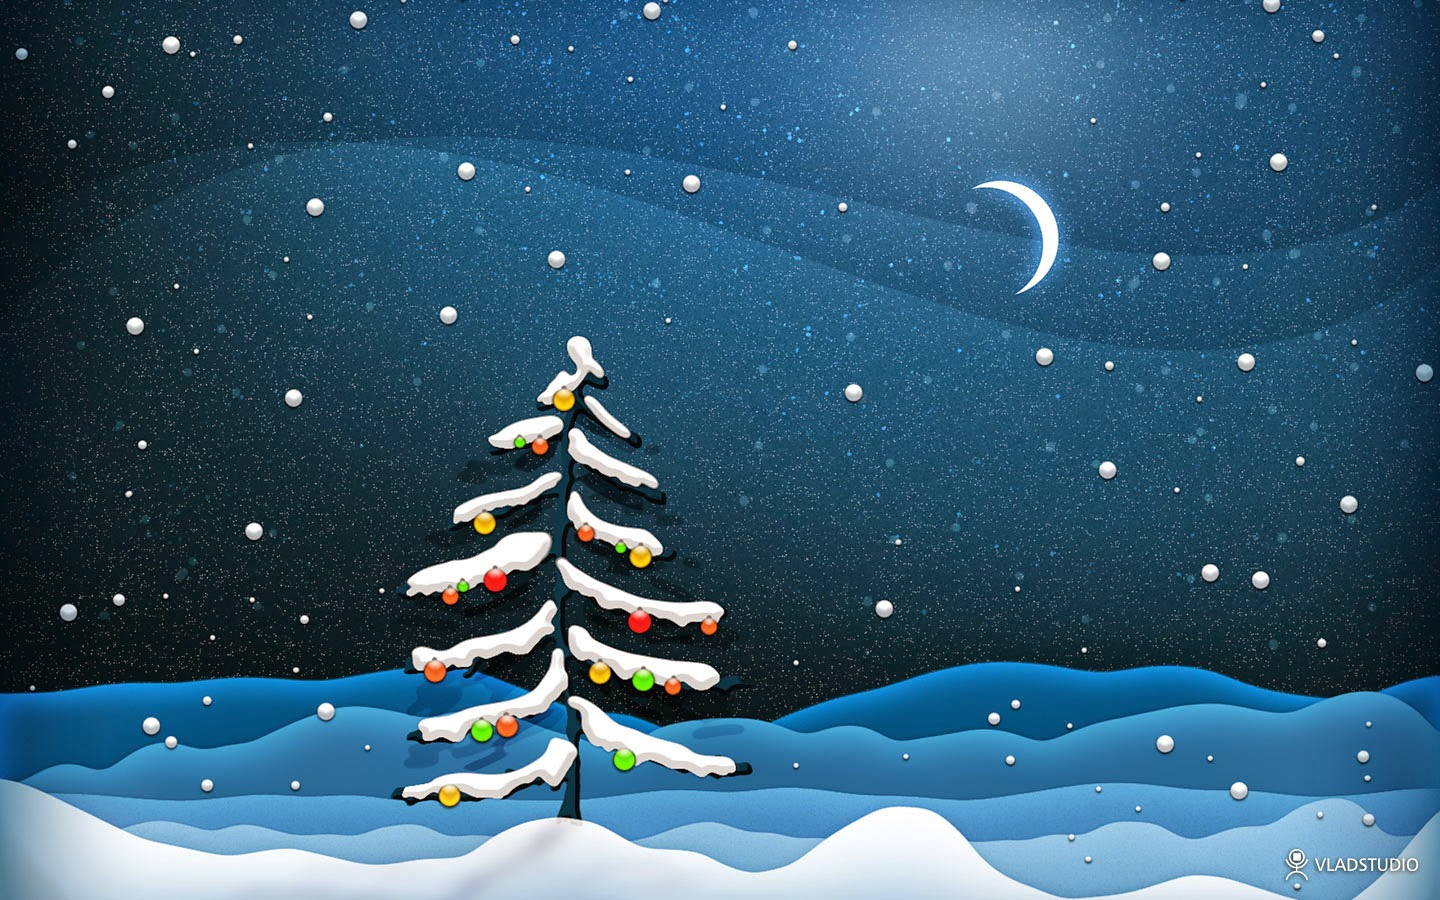 Christmas-tree-with-moon-background-cartoon-animation-HD-wallpaper.jpg